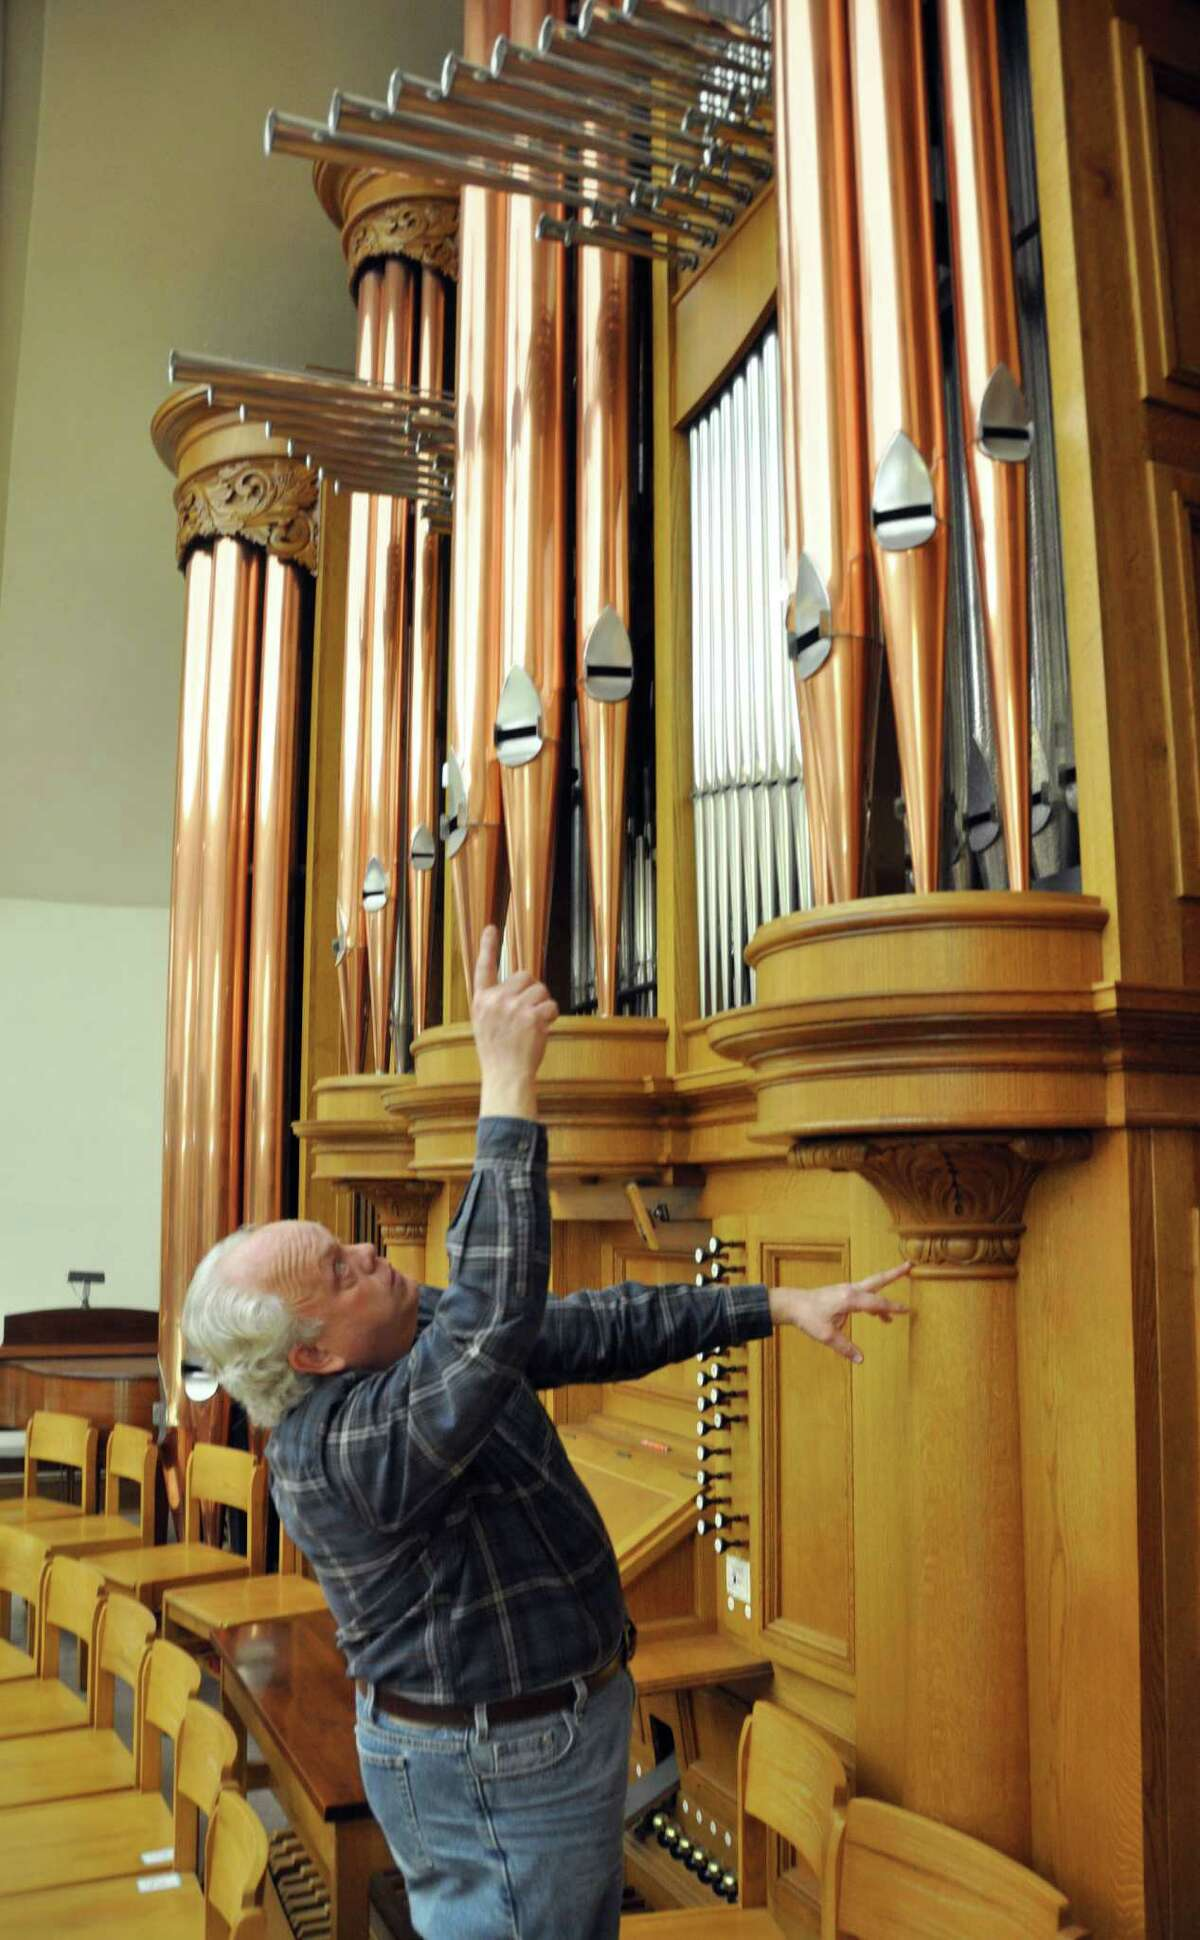 In this Friday, Nov. 30, 2012 photo, organ builder John Nordlie points at some of the towering pipes on an instrument he built for First United Methodist Church, in Sioux Falls, S.D. The pipe organ has ruled the Christian worship sanctuary for centuries, but a growth in praise-band worship services and a nationwide shortage of qualified organists are prompting many congregations to leave the majestic instrument out of their new building construction plans. But organ aficionados say they see a bright future for the instrument. (AP Photo/Dirk Lammers)